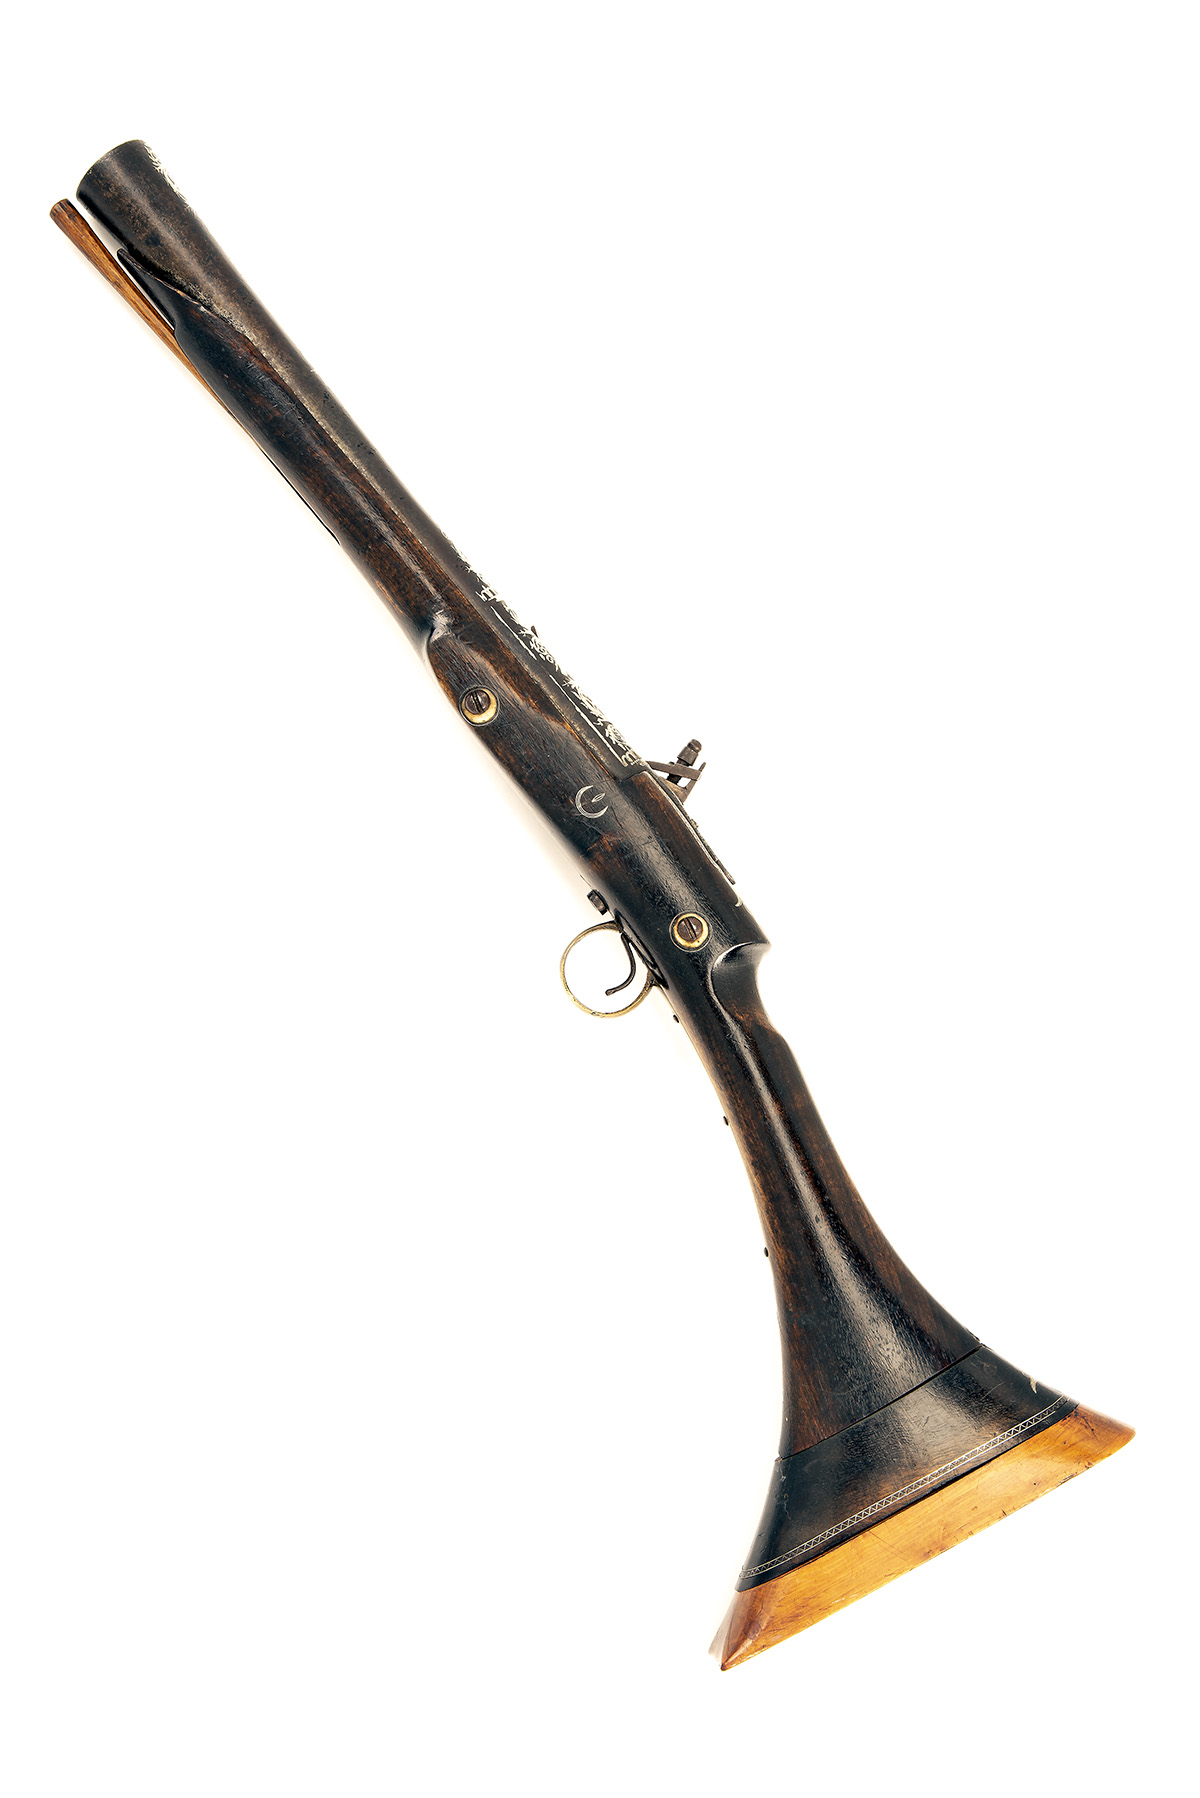 A 20-BORE SNAPHAUNCE BLUNDERBUSS or BREAST-PISTOL, UNSIGNED, no visible serial number, North African - Image 2 of 4